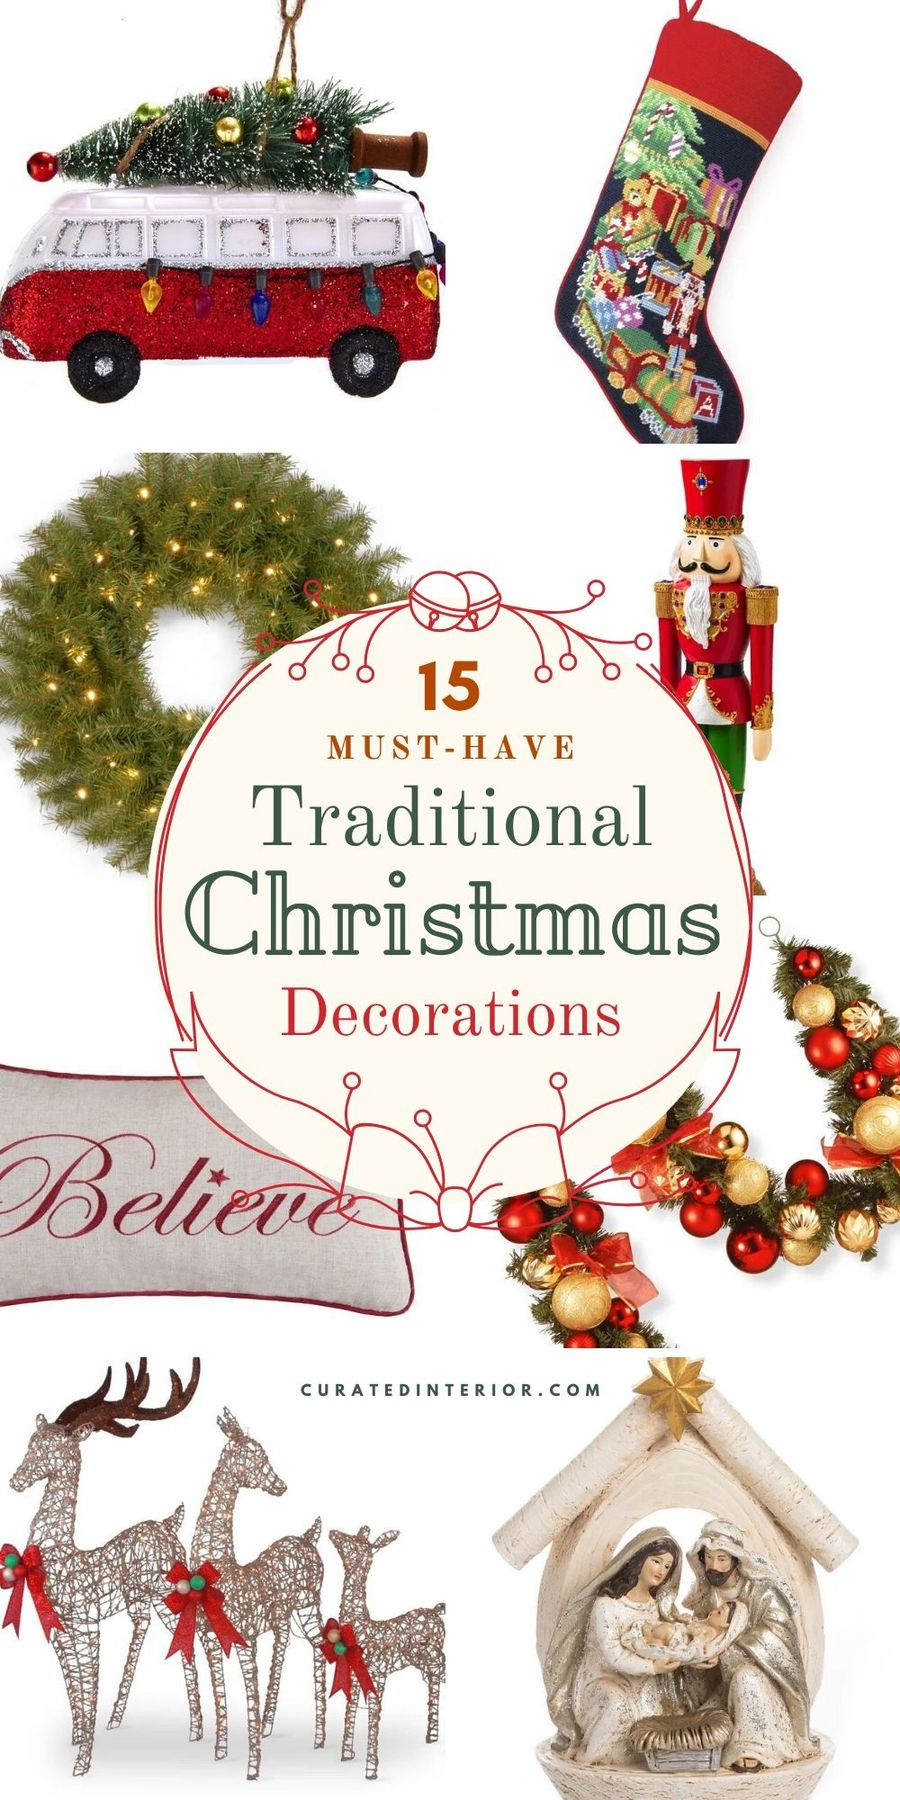 15 Must-Have Traditional Christmas Decorations